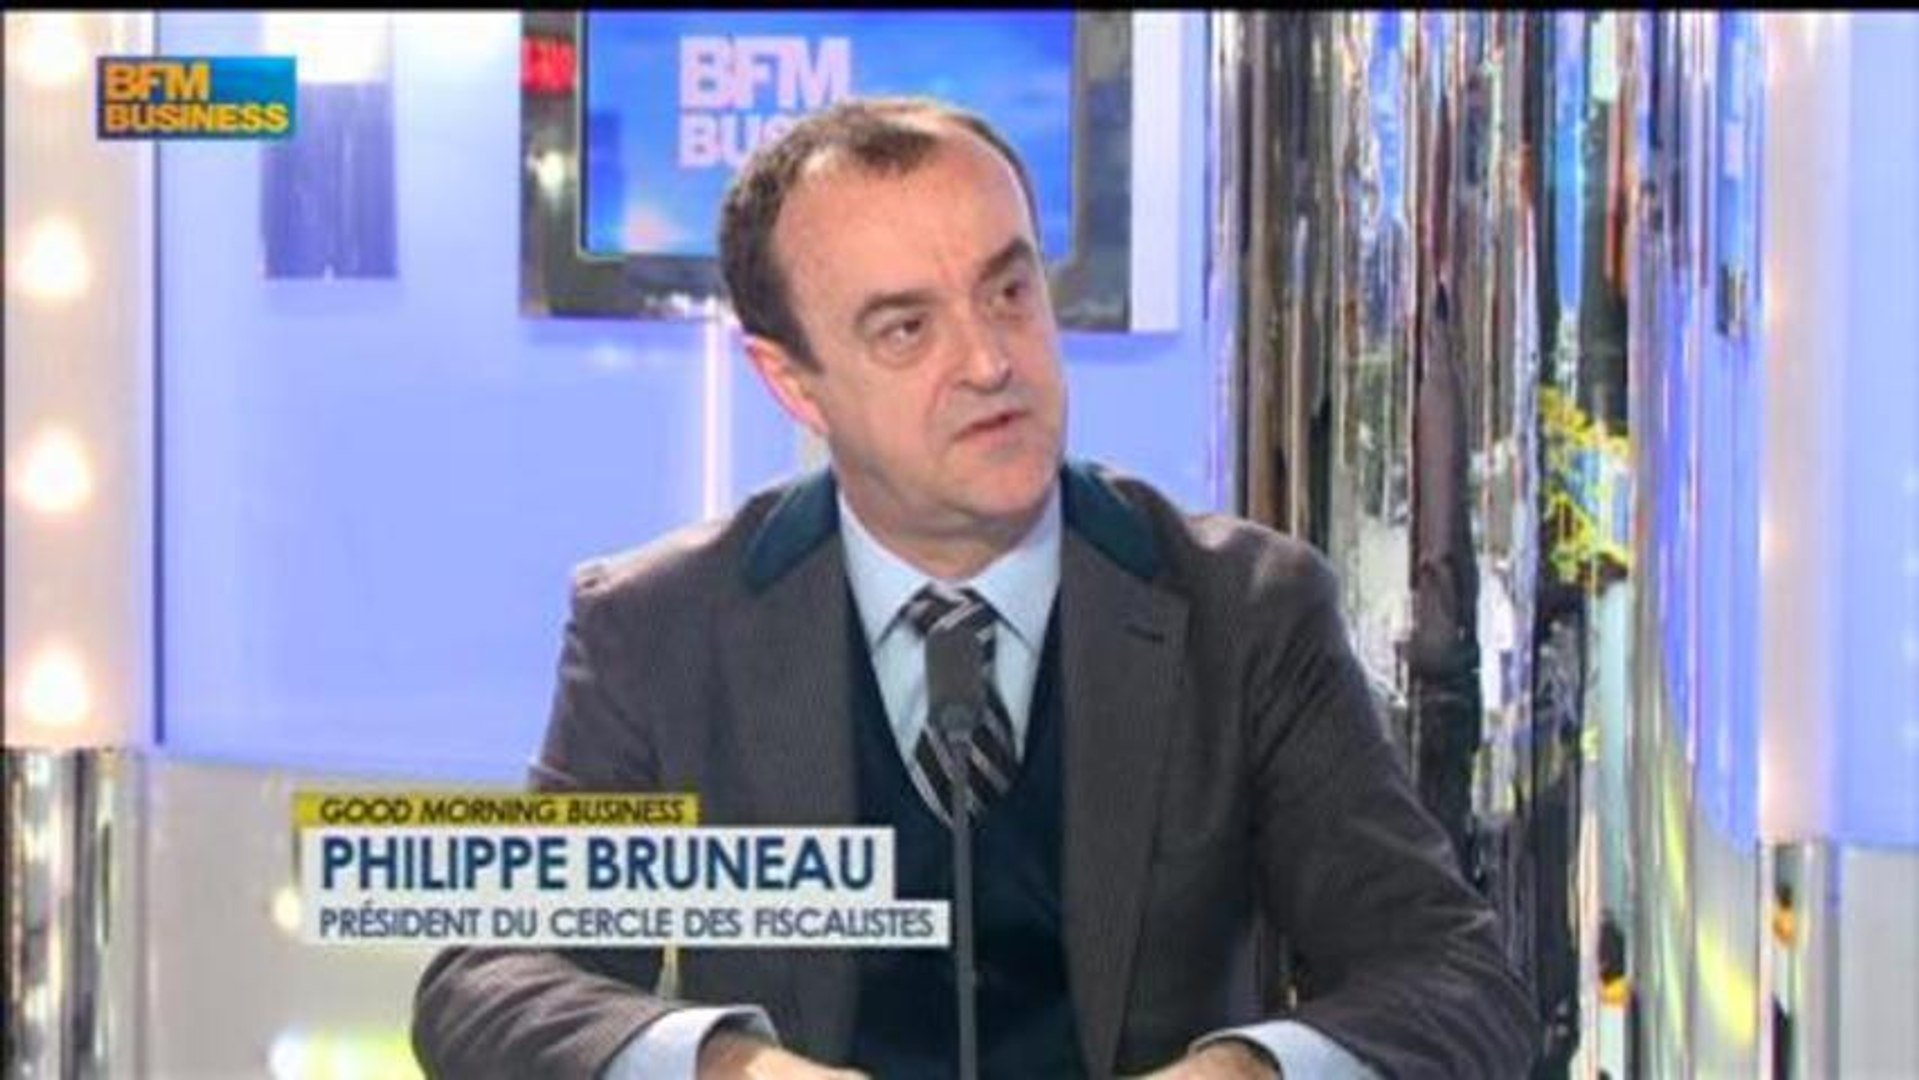 Philippe bruneau fiscaliste kleinbettingen betting on the come